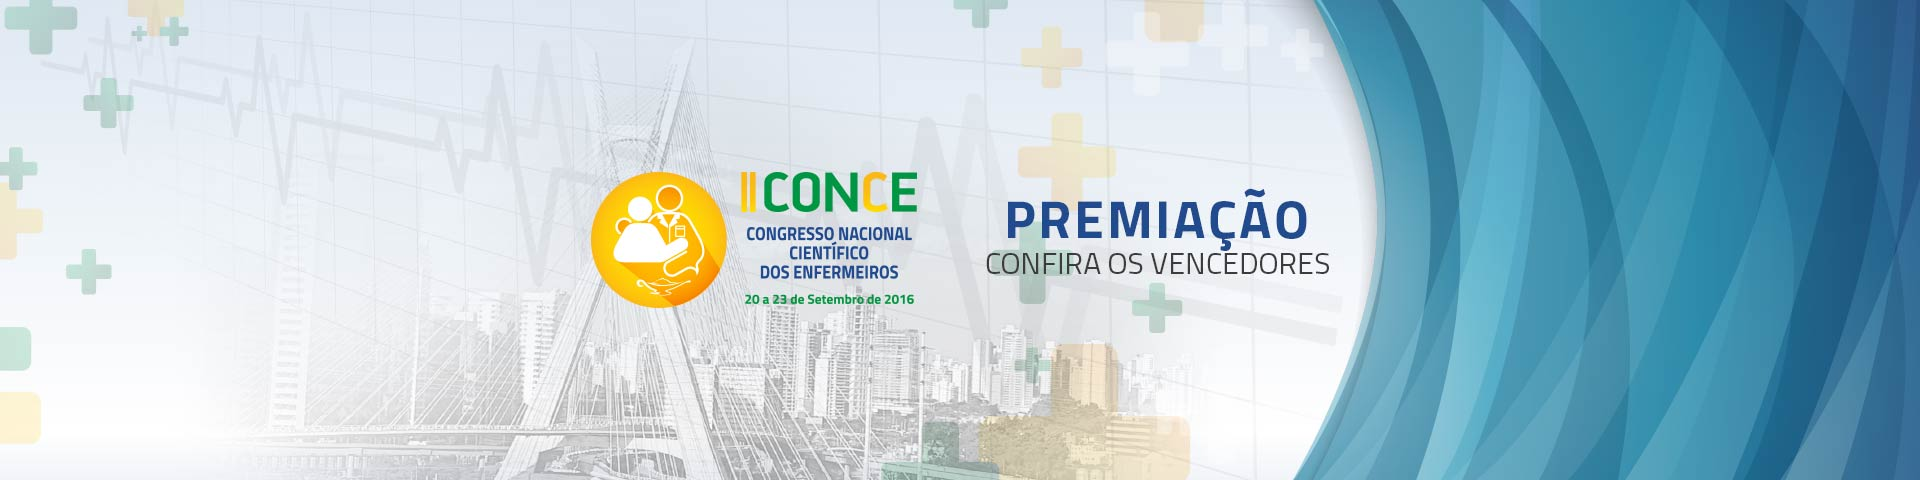 conce-2016_painel-premiacao